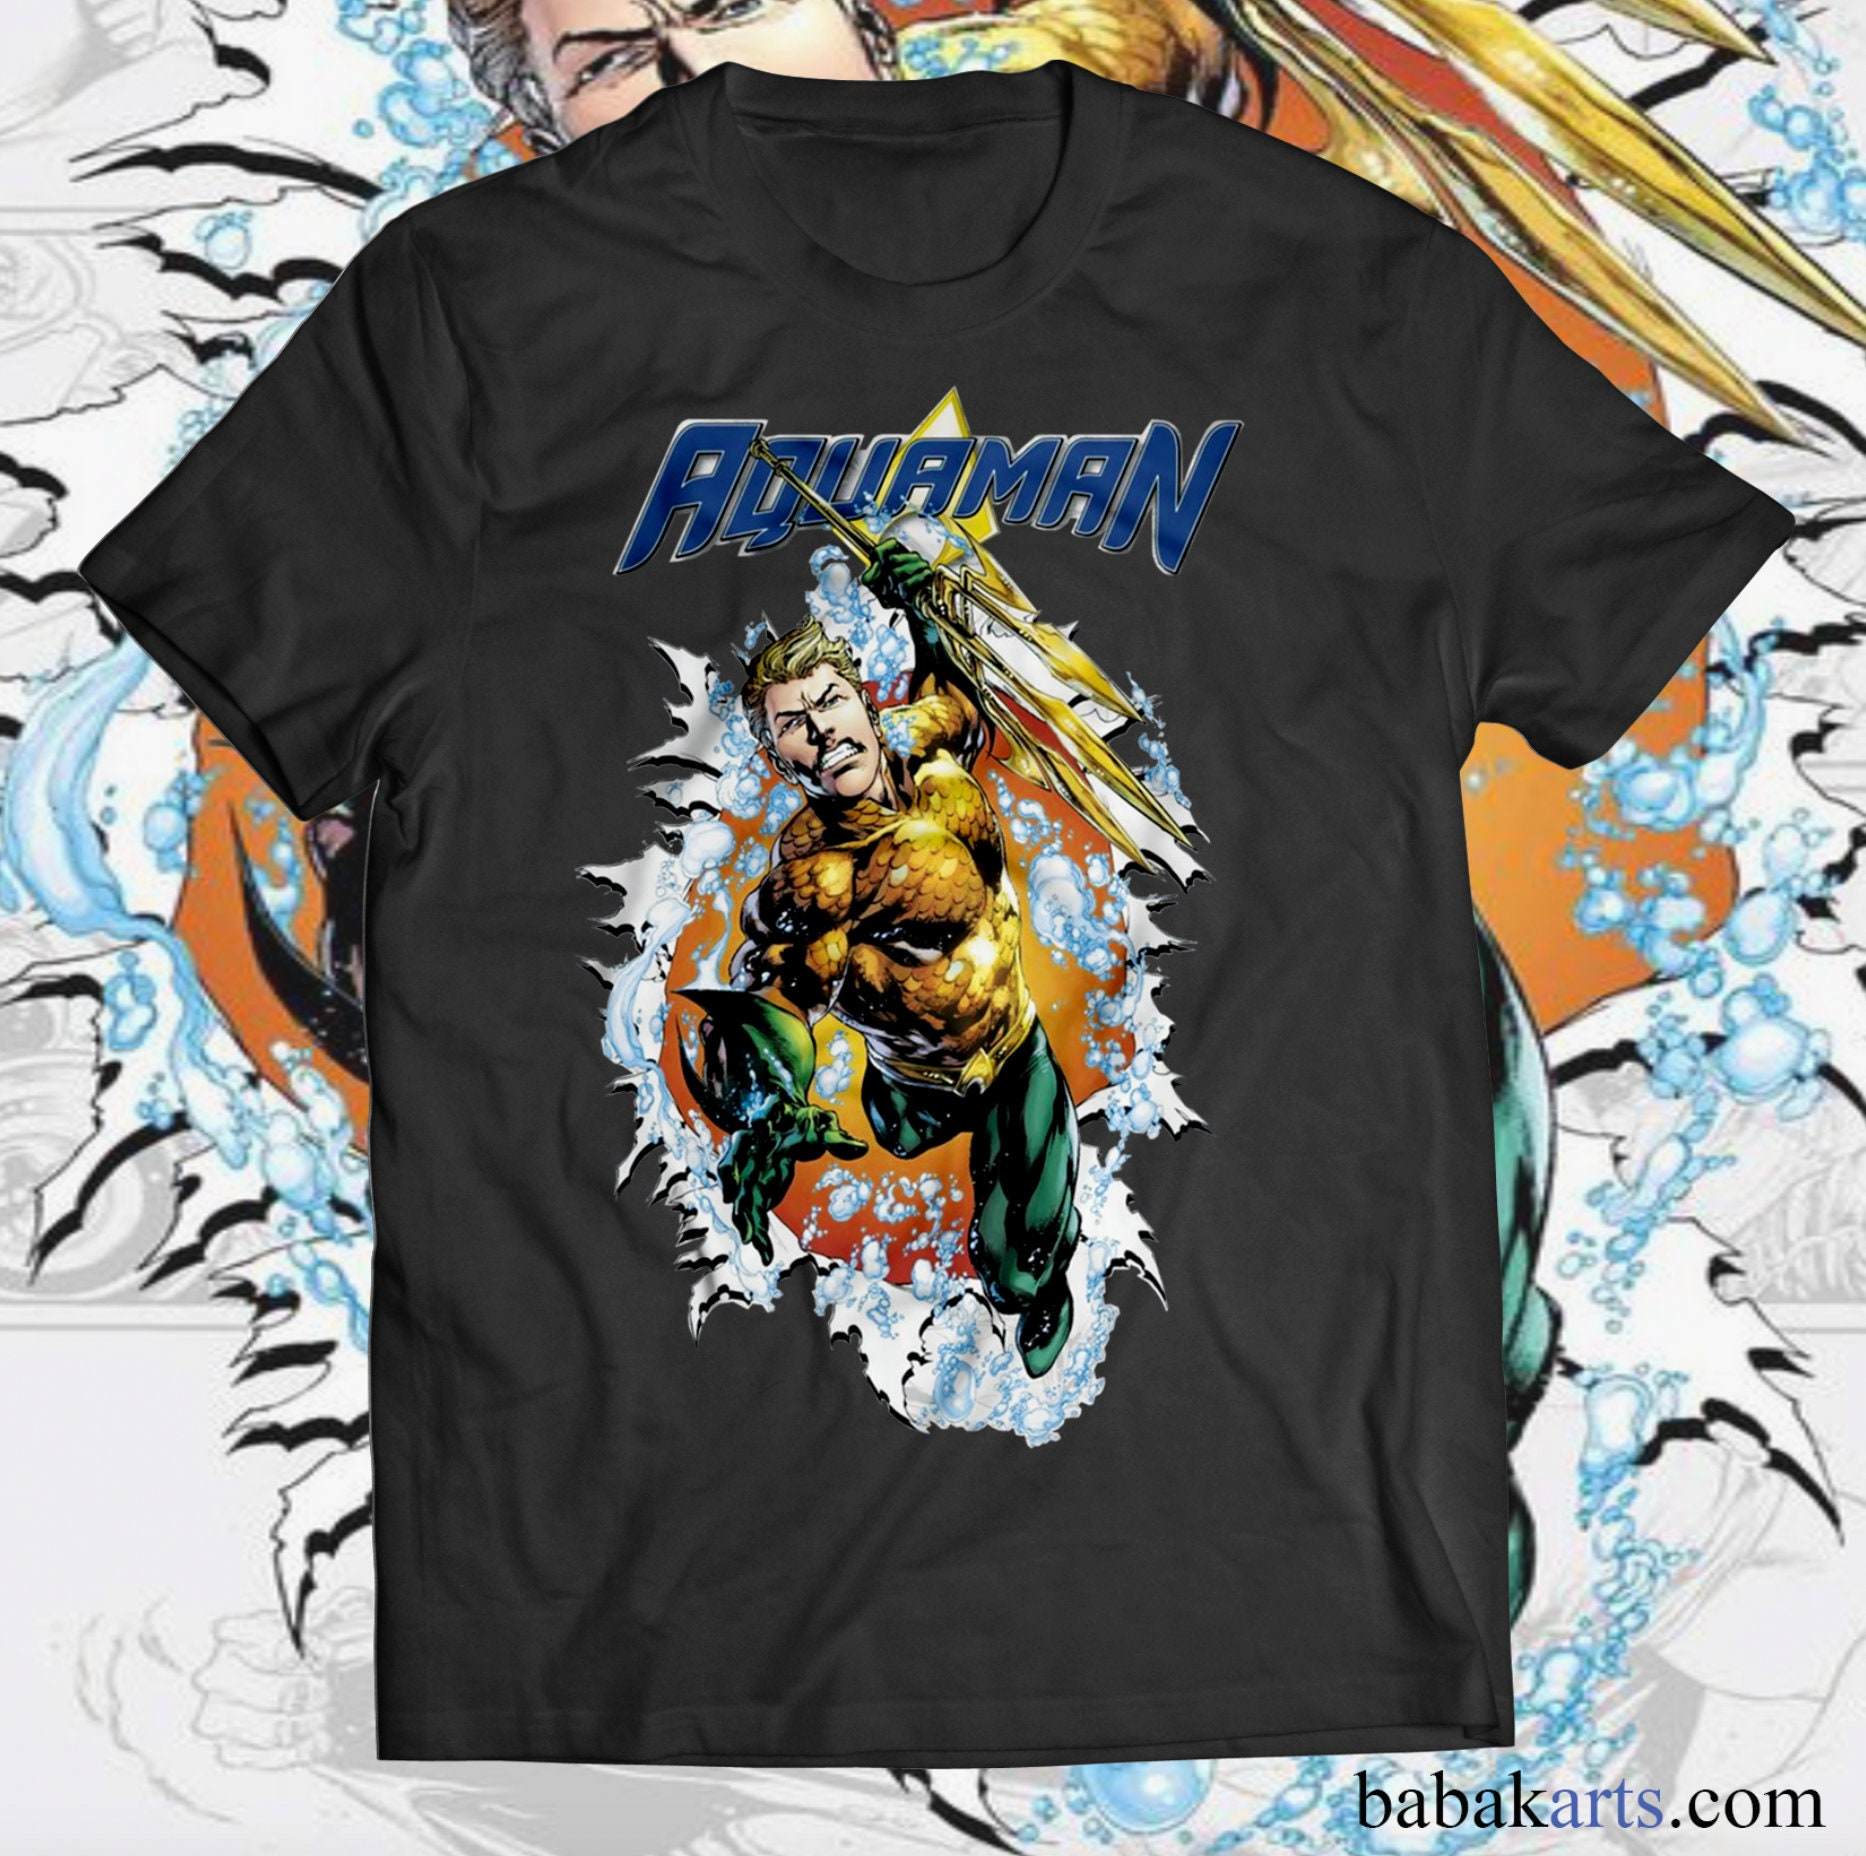 8ad54de9c1359 Aquaman T-Shirt - Marvel gifts - Superhero shirts - Superhero ...